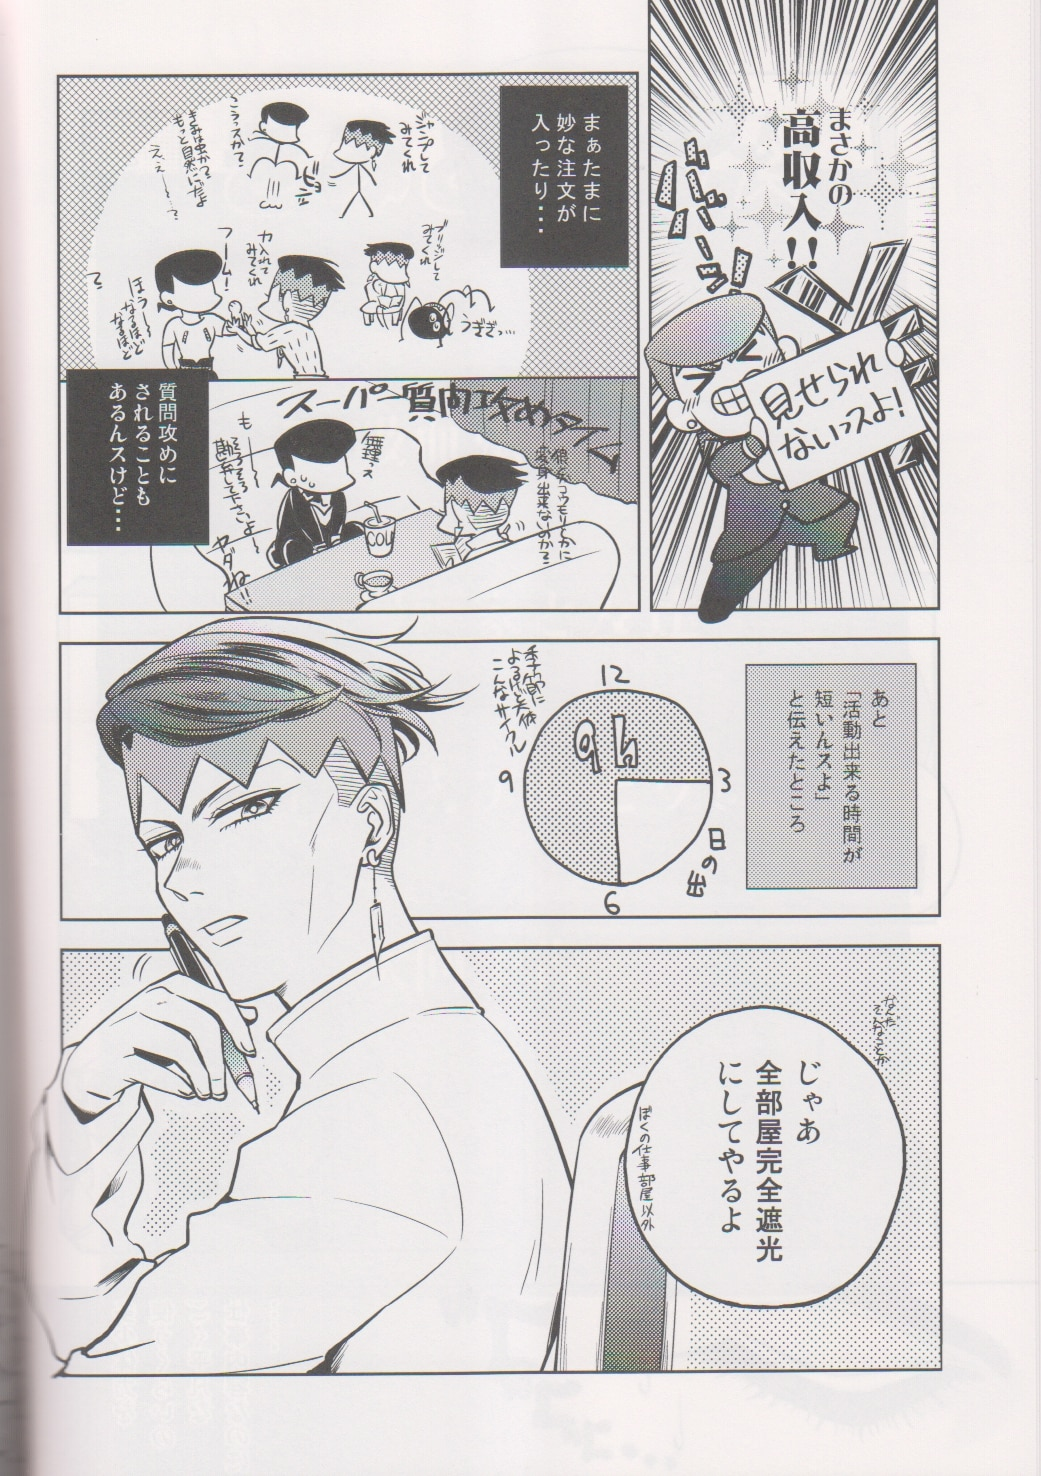 Doujinshi - Jojo Part 4: Diamond Is Unbreakable / Jyosuke x Rohan (きみと明星 2) / ハラペコジャンクション!!